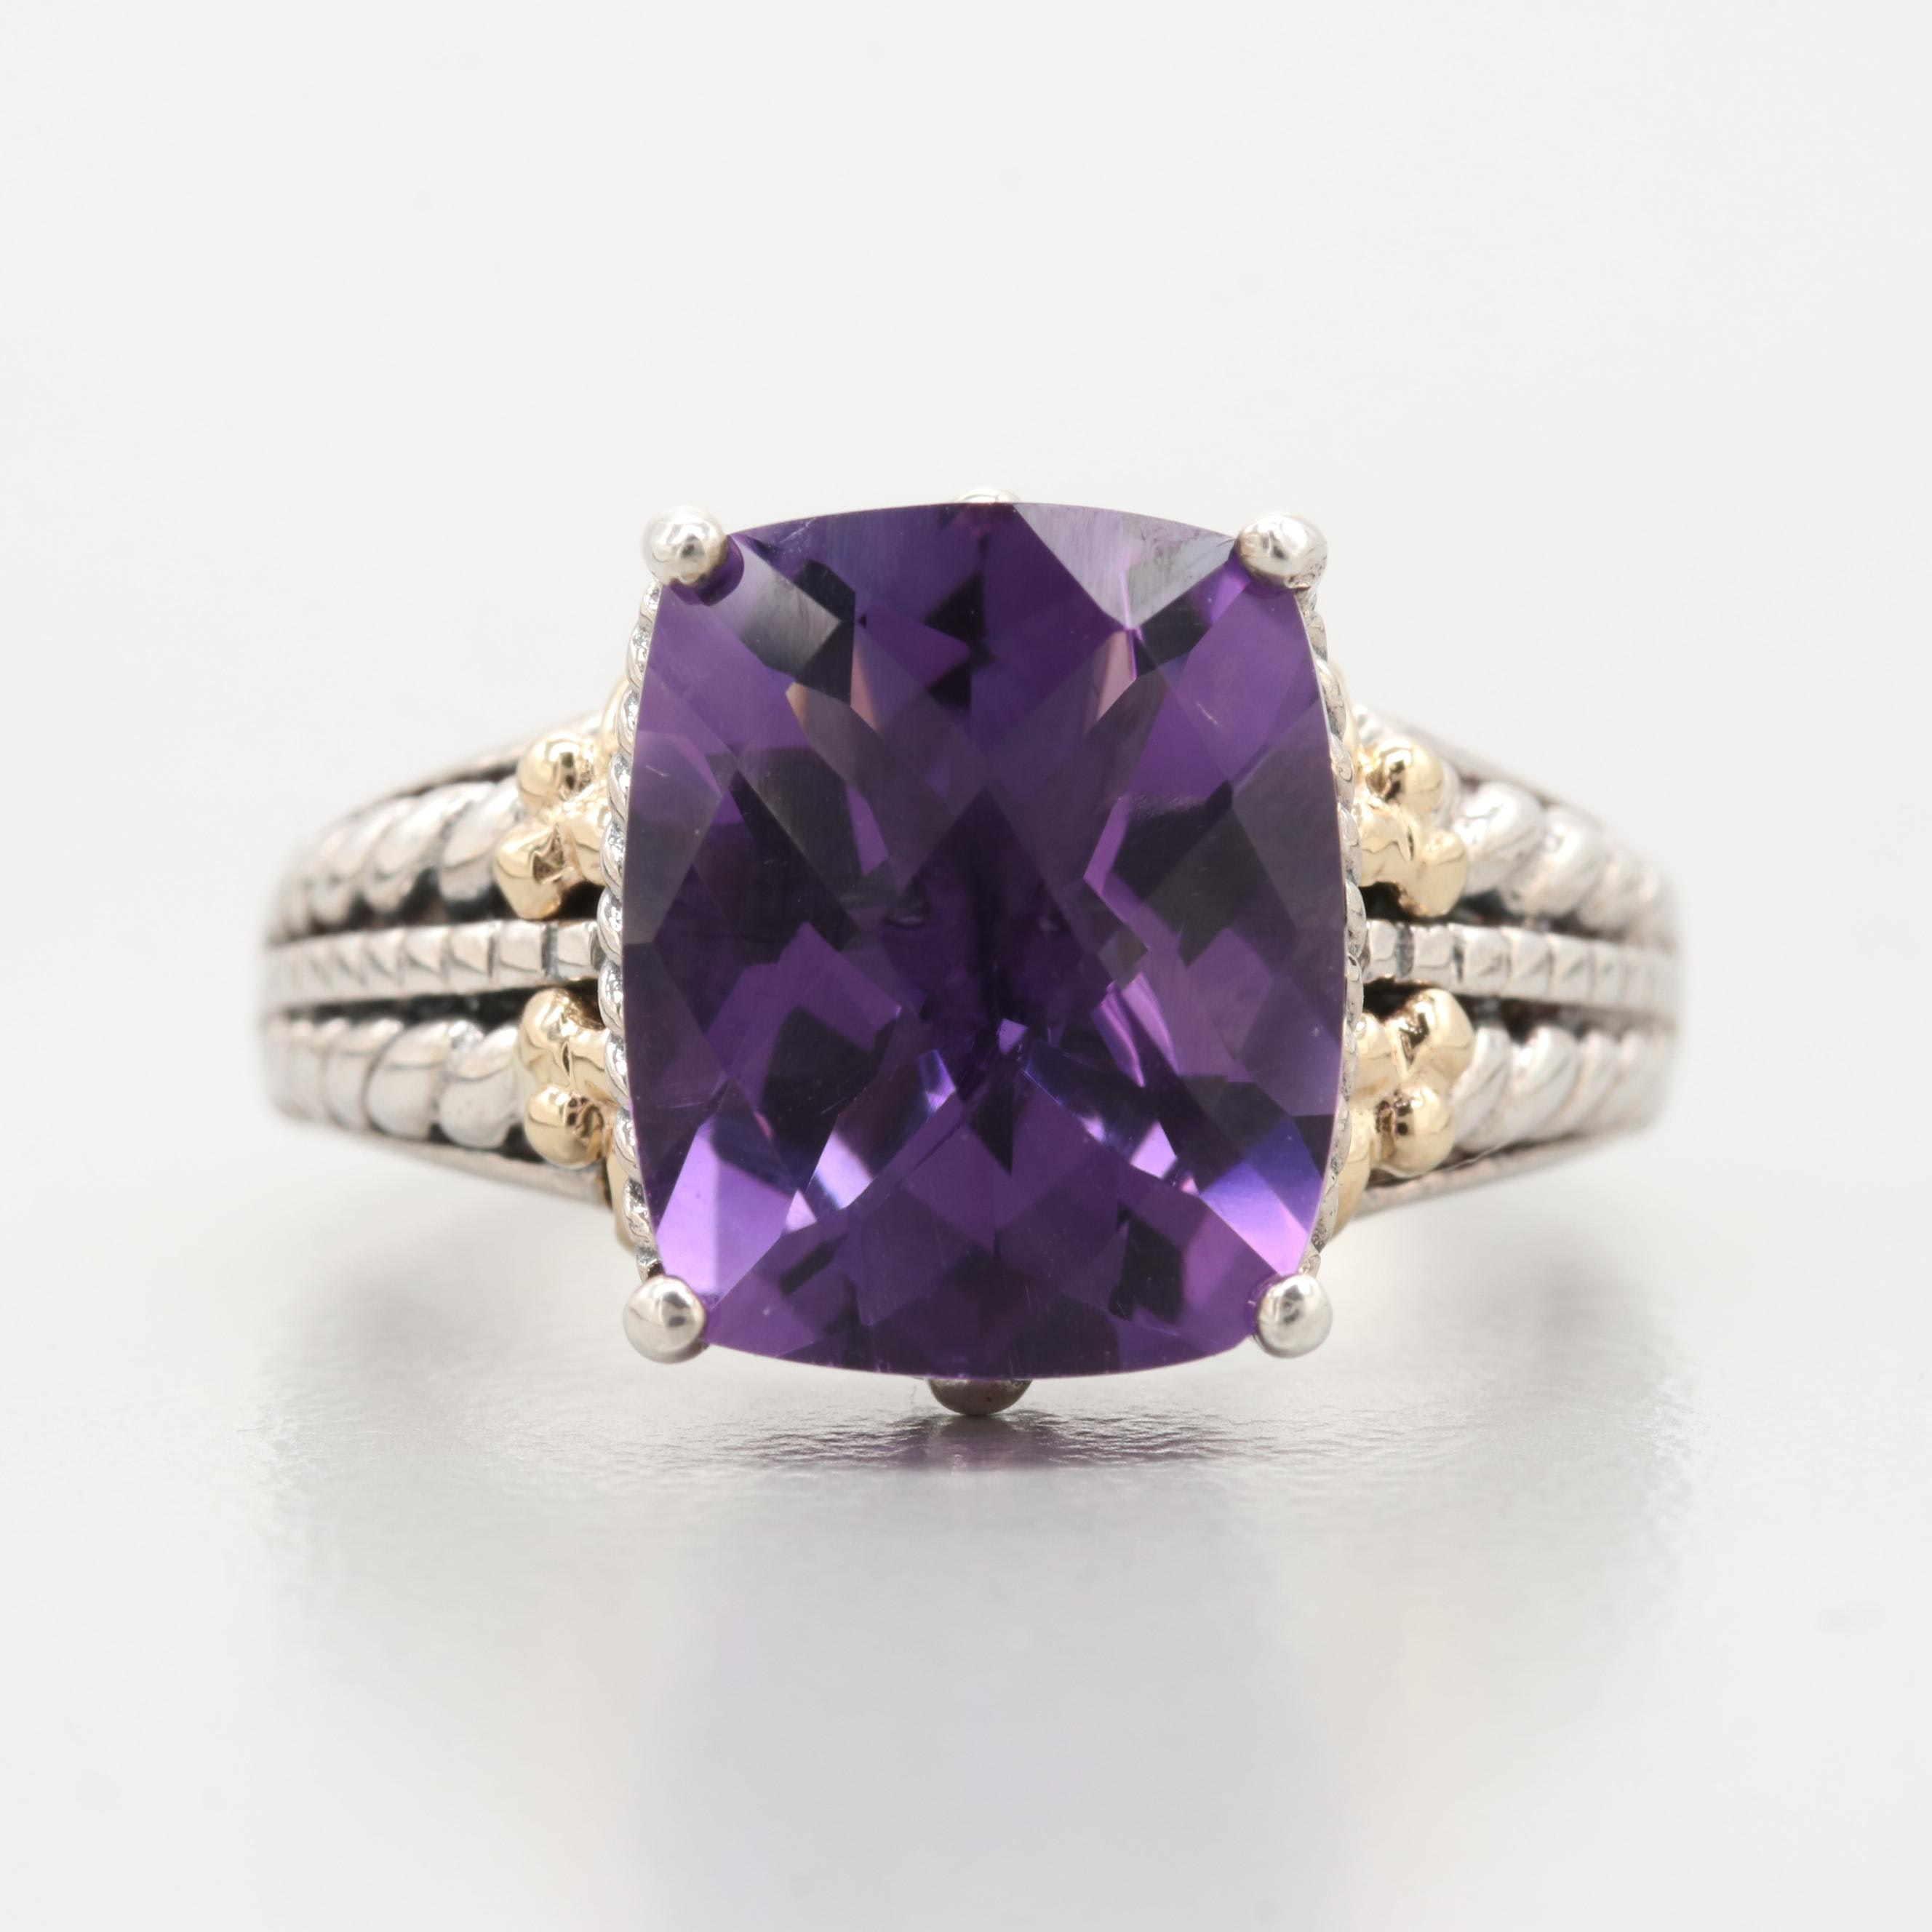 Sterling Silver Amethyst Ring with 14K Yellow Gold Accents